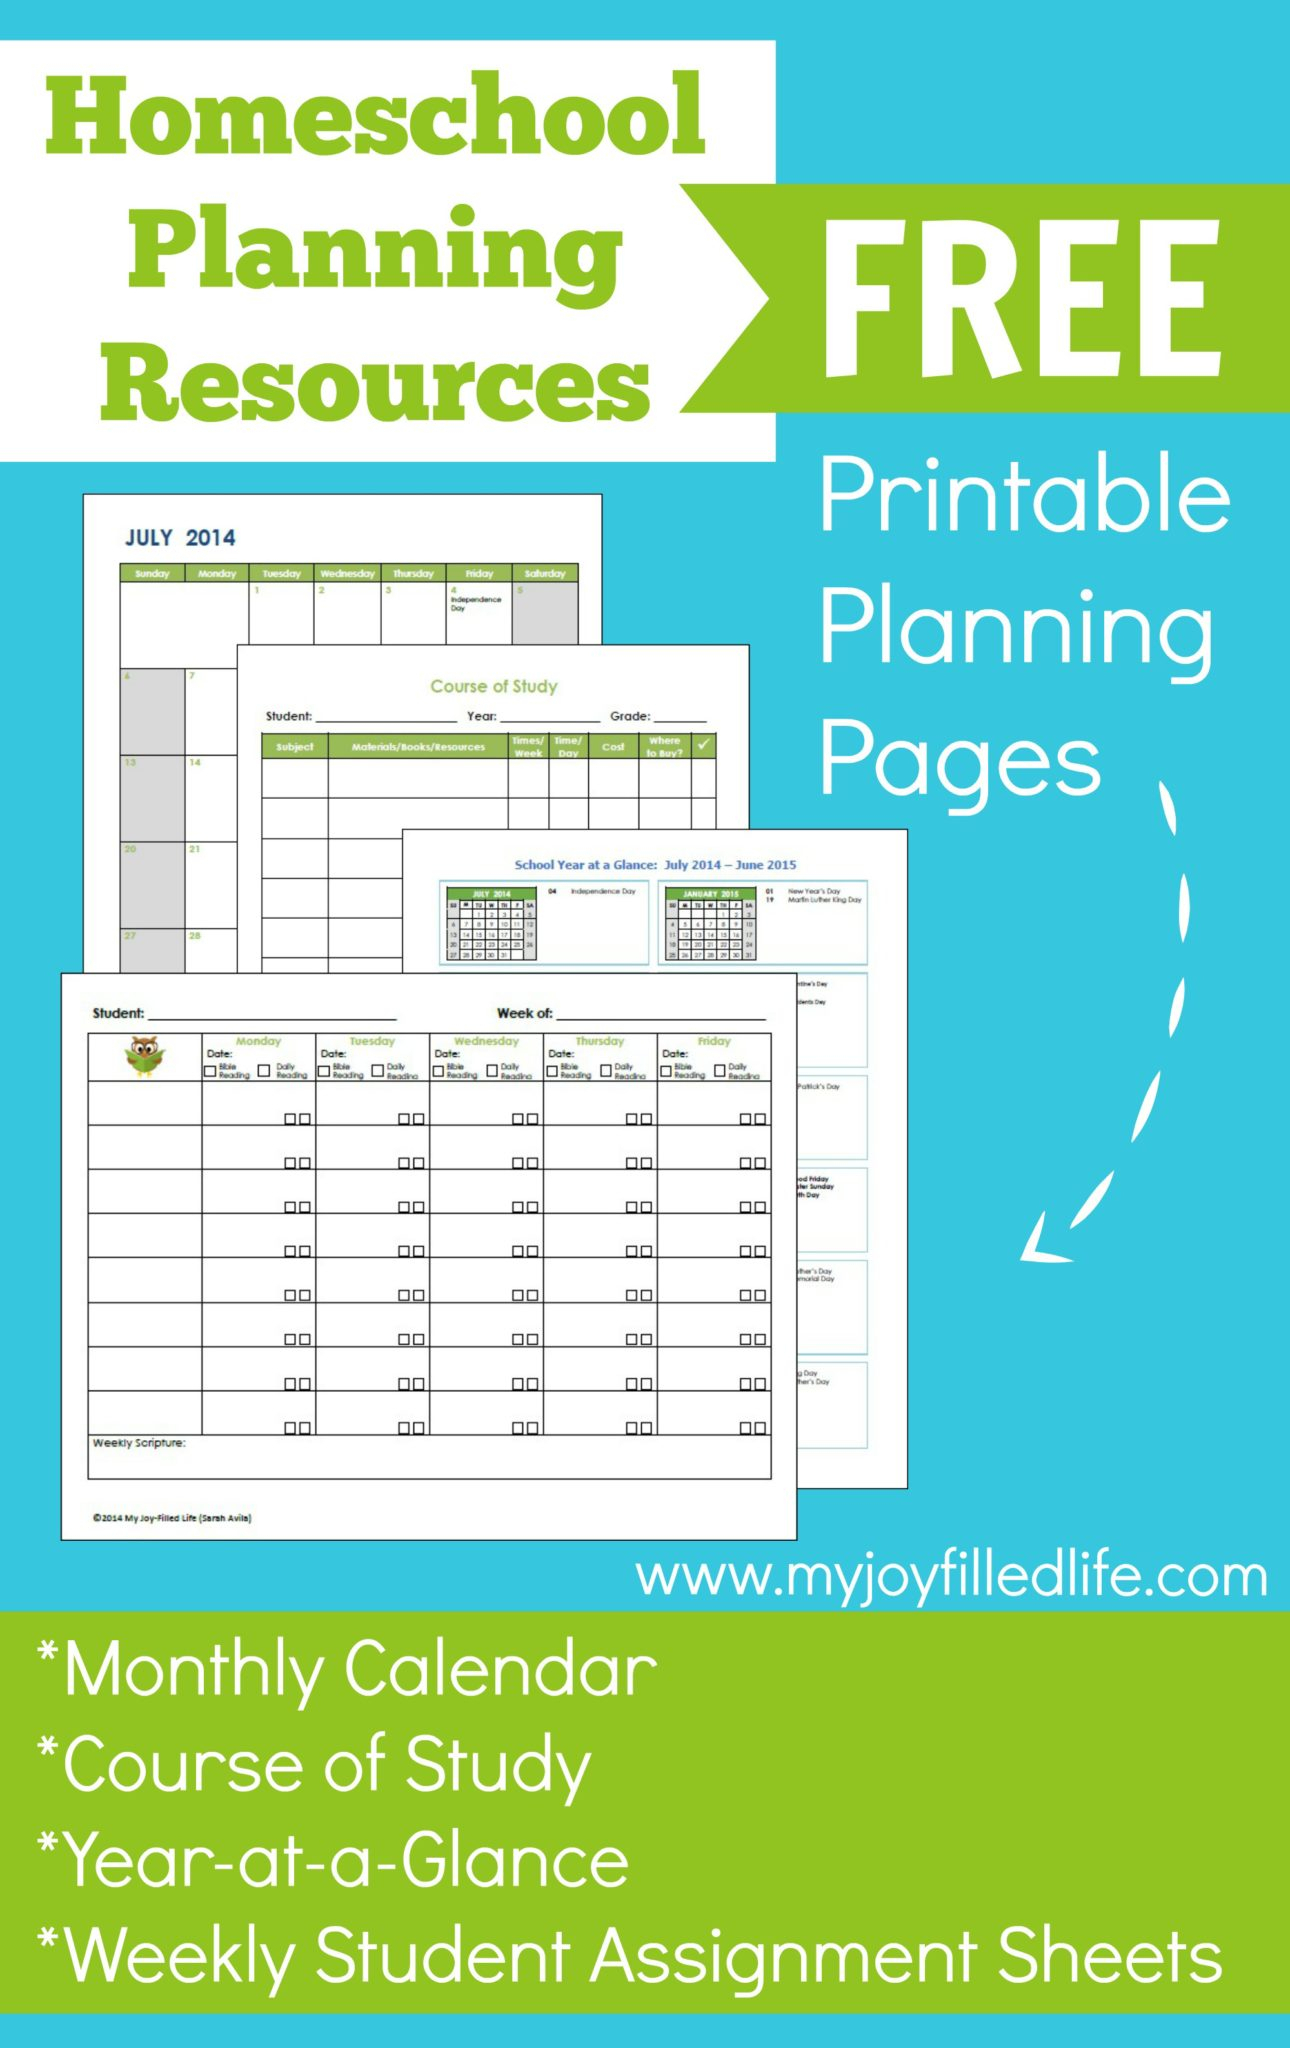 Homeschool Planning Resources & Free Printables - My Joy-Filled Life for Free Printable Homeschool Calendar 2019-2020 Year At A Glance